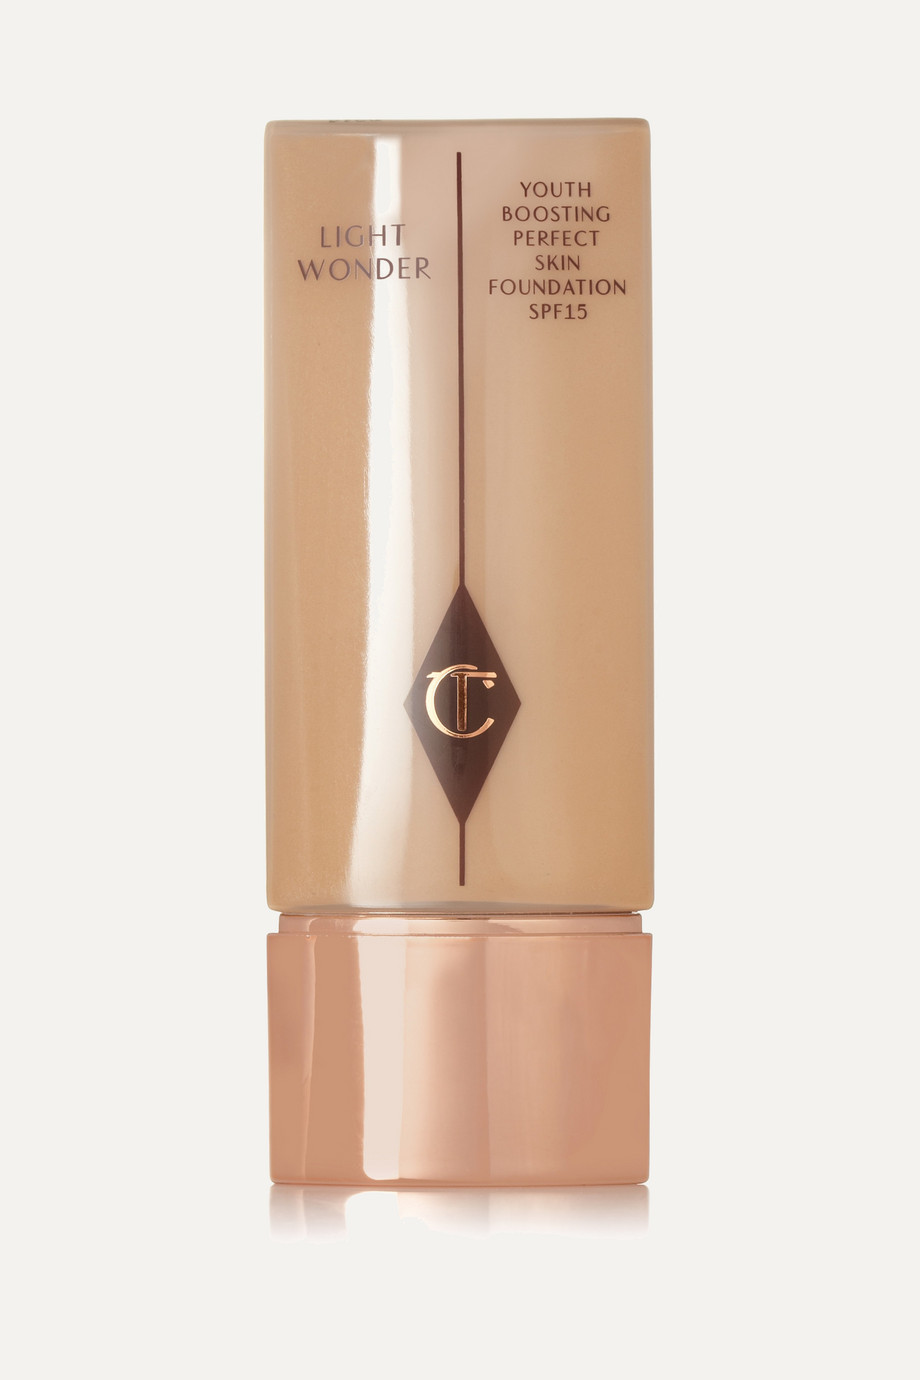 Charlotte Tilbury Light Wonder Youth-Boosting Foundation LSF 15 – 5 Medium, 40 ml – Foundation